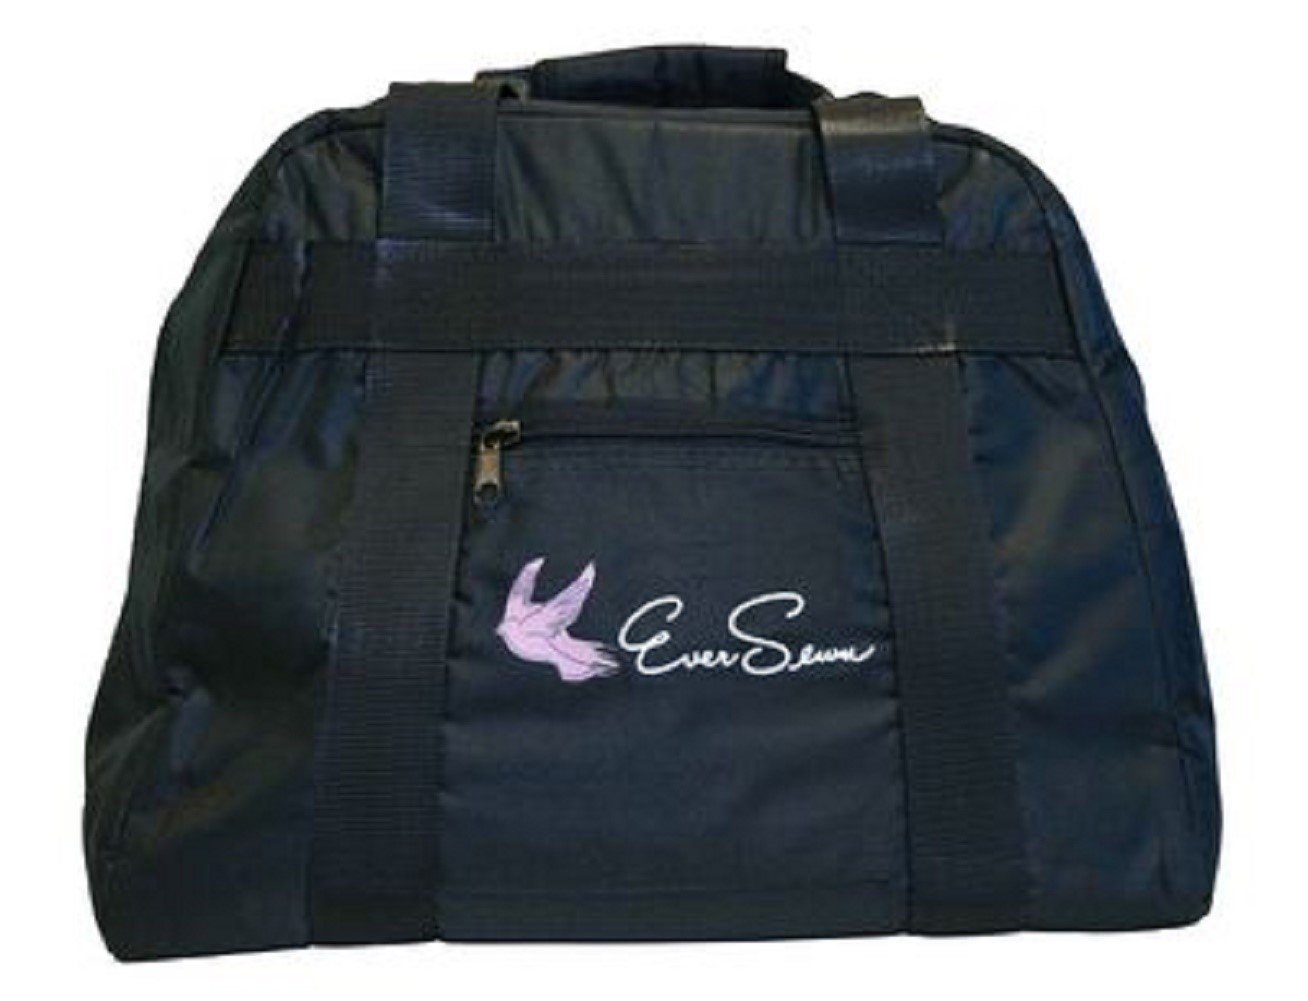 Portable Bag Eversewn Sparrow Canvas Sewing Machine Tote 18L x 8W x 14H